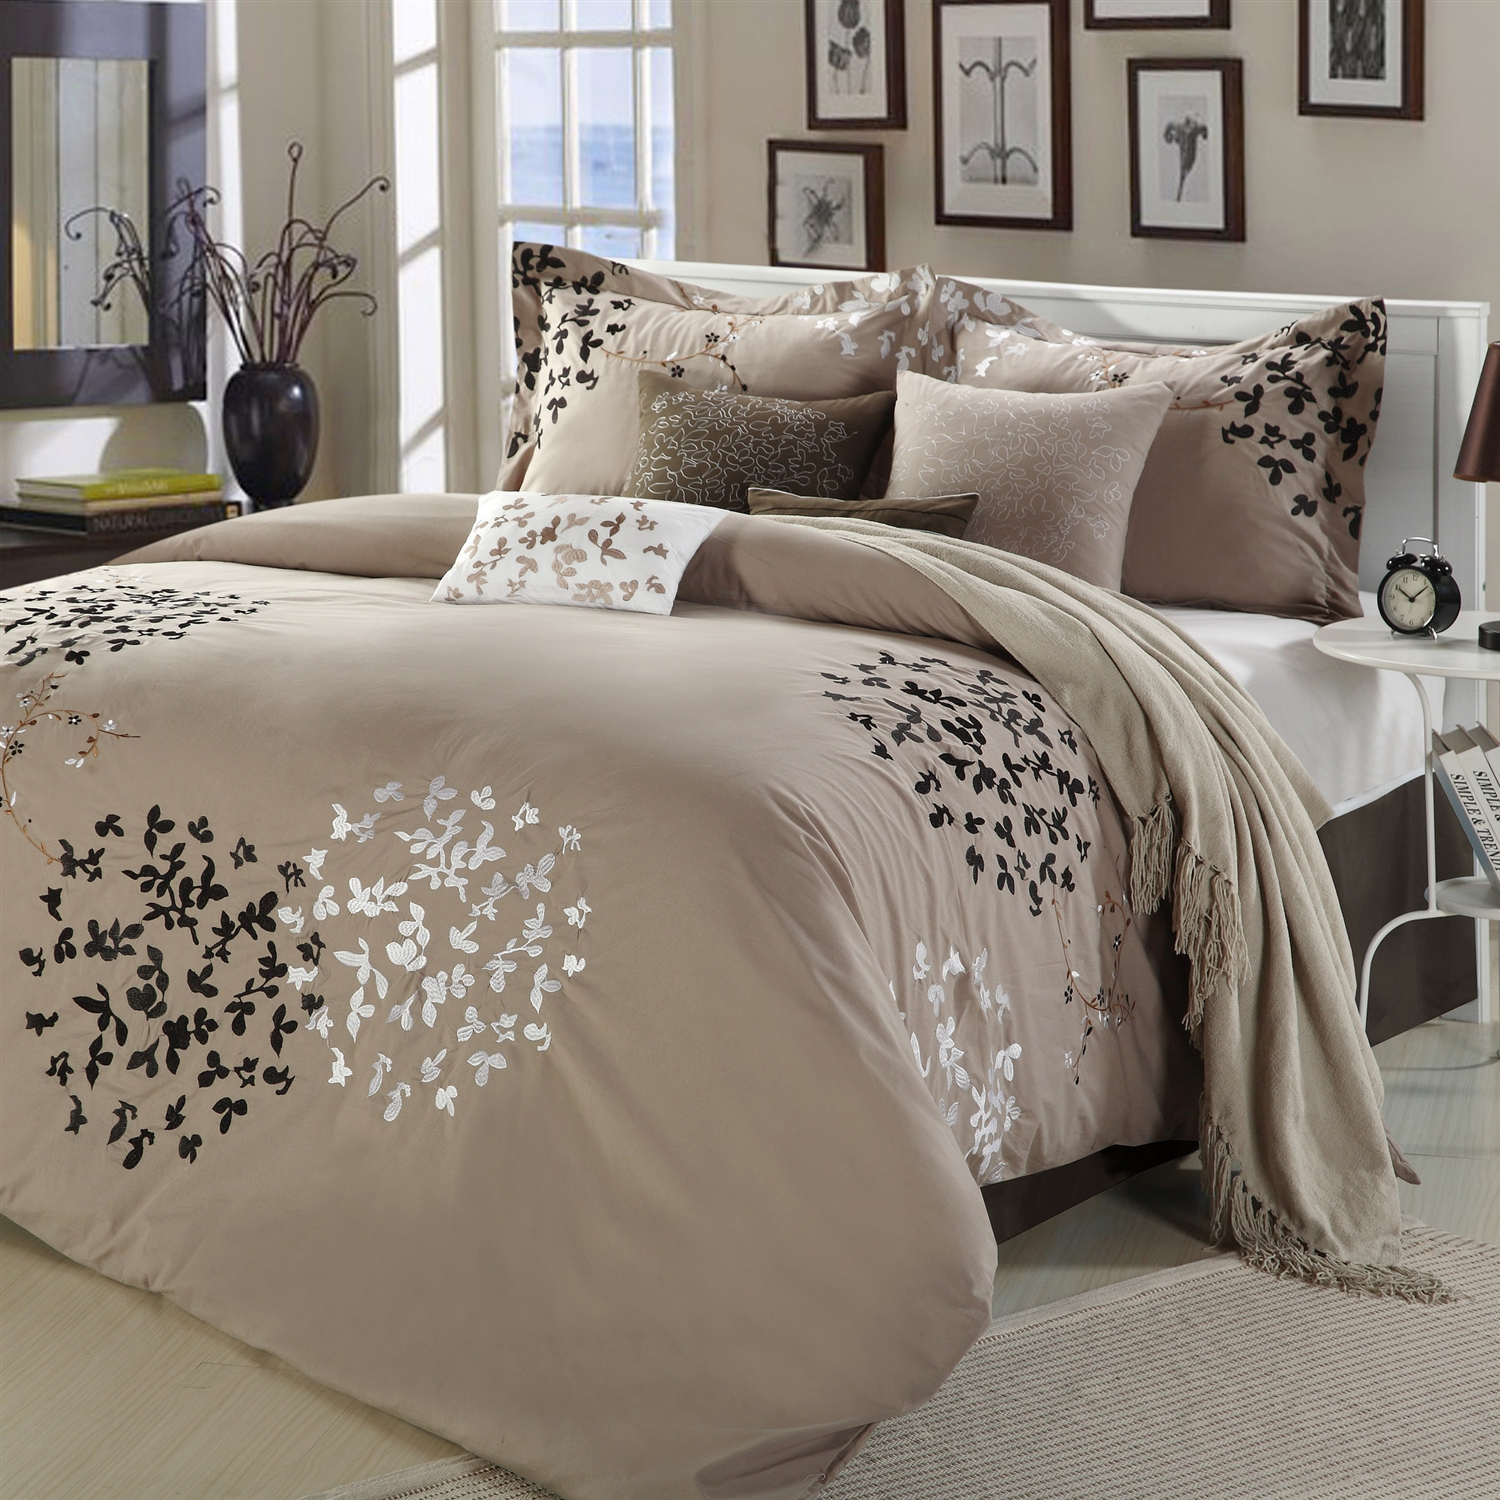 Queen Size 8 Piece Comforter Set In Light Brown Black Tan White Fastfurnishings Com